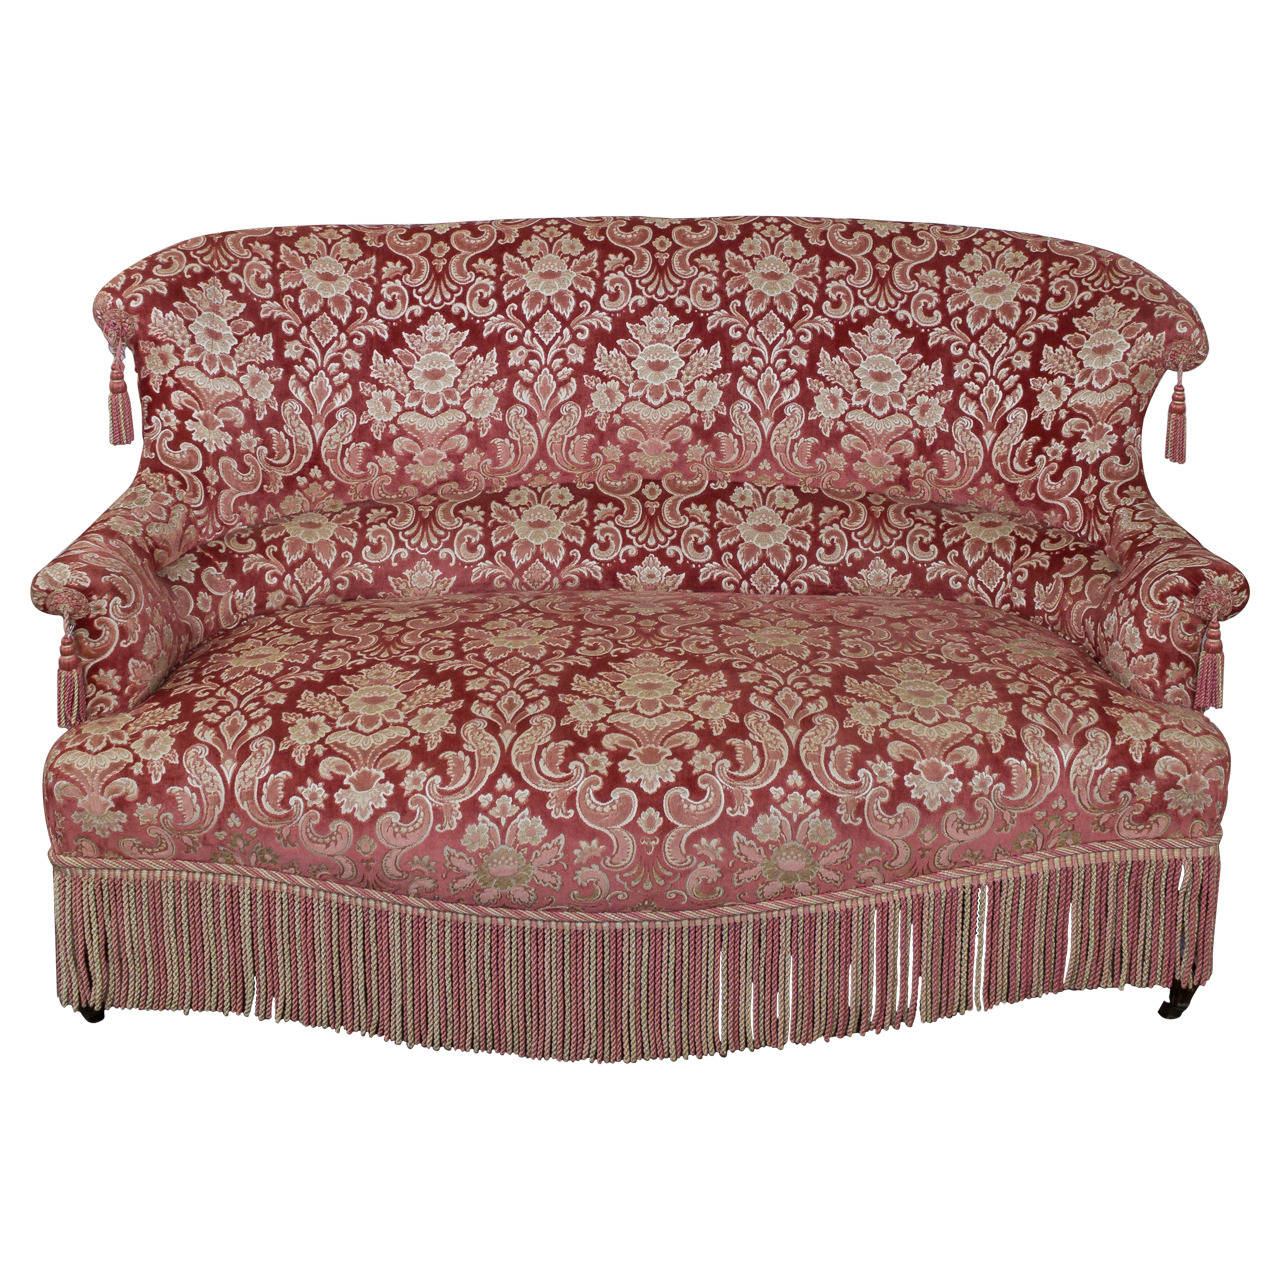 19th Century French Napoleon III Settee with Red Velvet and Bullion Fringe